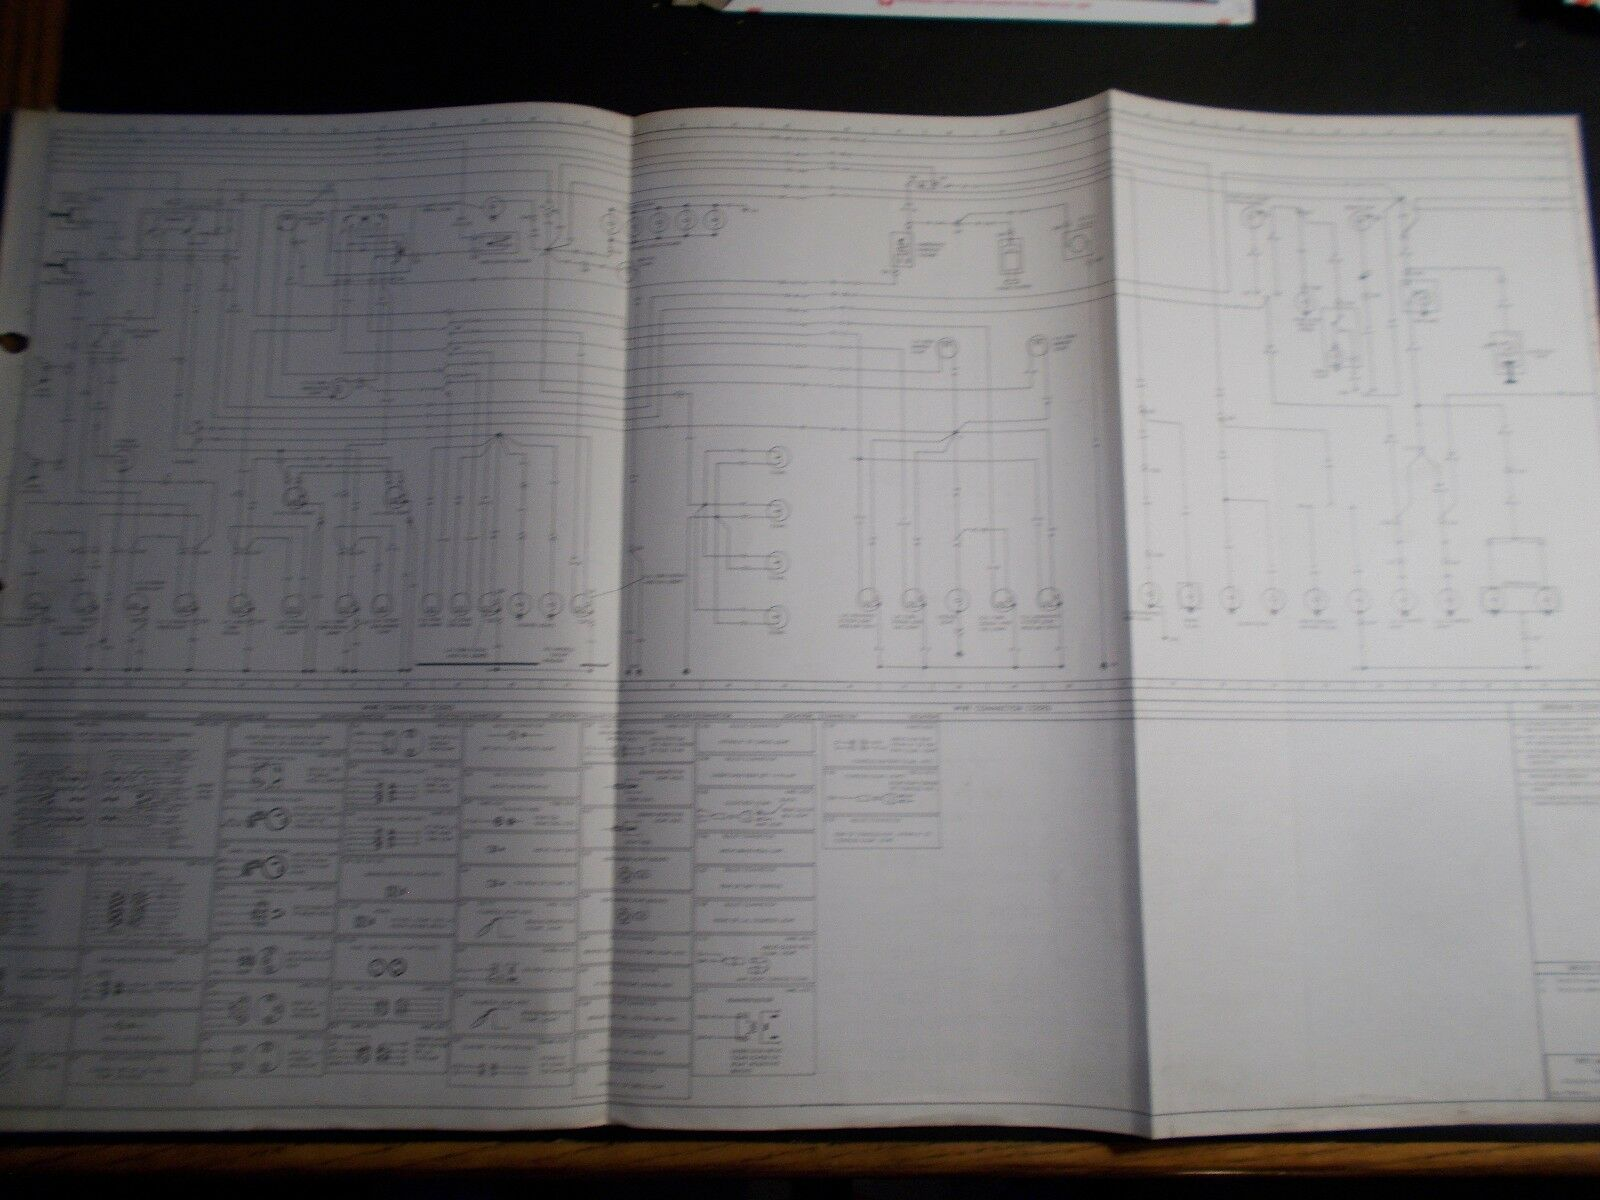 1971 Mercury Montego Engine Diagram Meter And Fuse Box Contuor Wirediagram Jeanjaures37 Fr